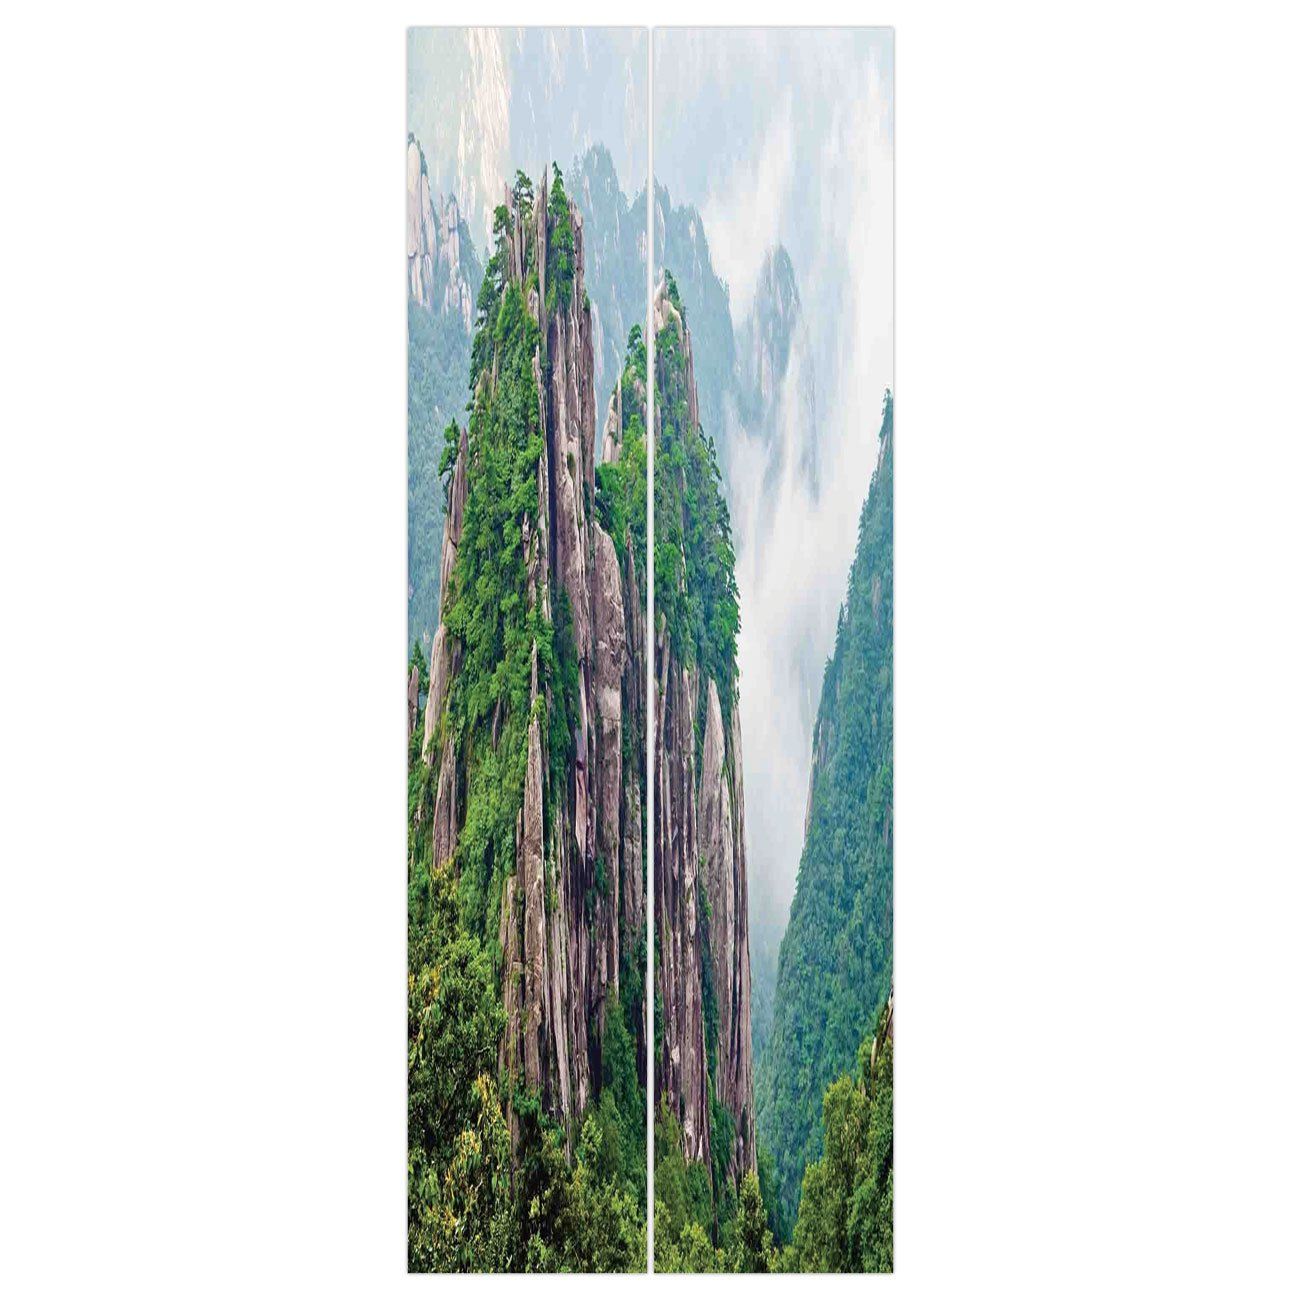 3d Door Wall Mural Wallpaper Stickers [ Apartment Decor,Sacred Majestic Slim Mountains Rocks in Clouds South Asian Chinese Nature Photo,Green Brown White ] Mural Door Wall Stickers Wallpaper Mural DIY